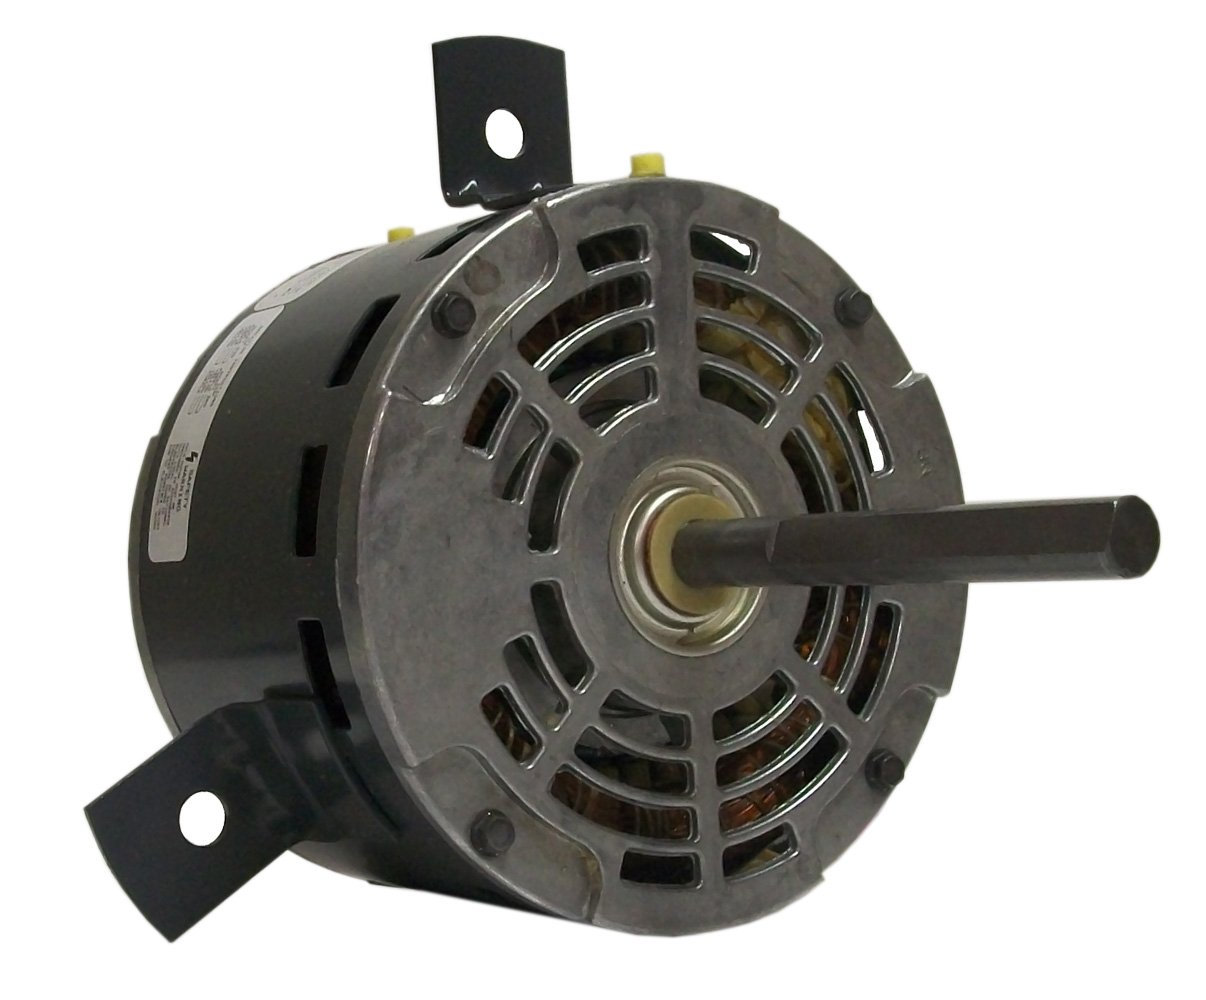 REV Rotation 1 Speed Sleeve Bearing Fasco D843 5.6-Inch Diameter PSC Motor 2.2-2 Amps 1//4-1//5 HP 1075 RPM 208-230 Volts